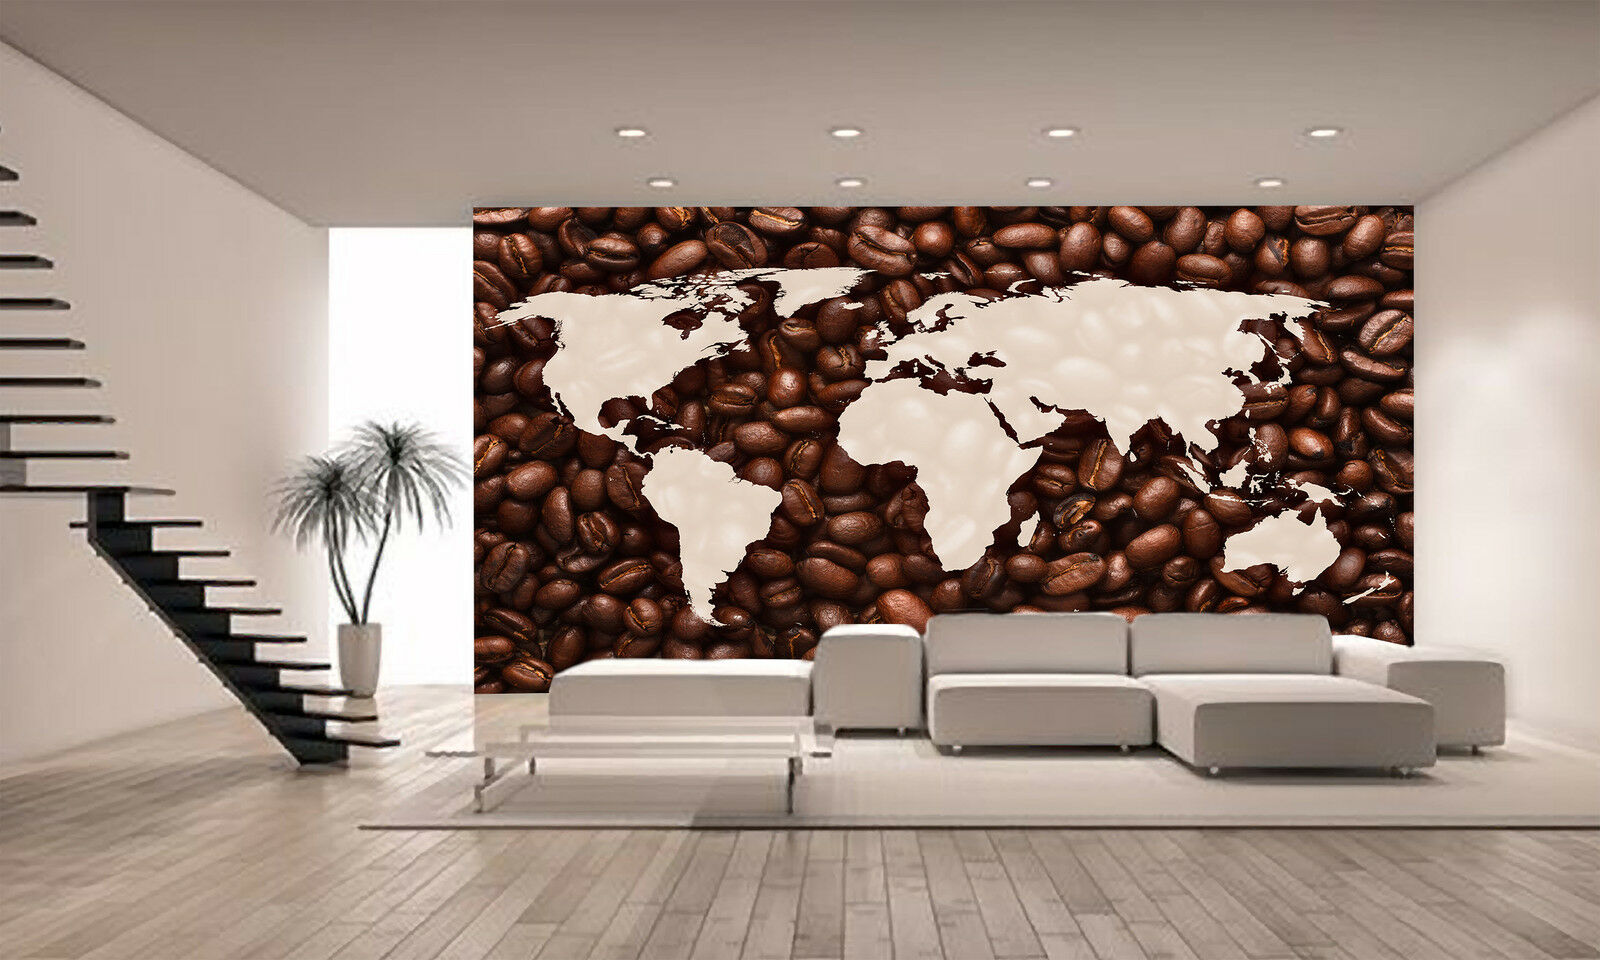 World Map with Coffee Beans Wall Mural Photo Wallpaper GIANT DECOR Paper Poster